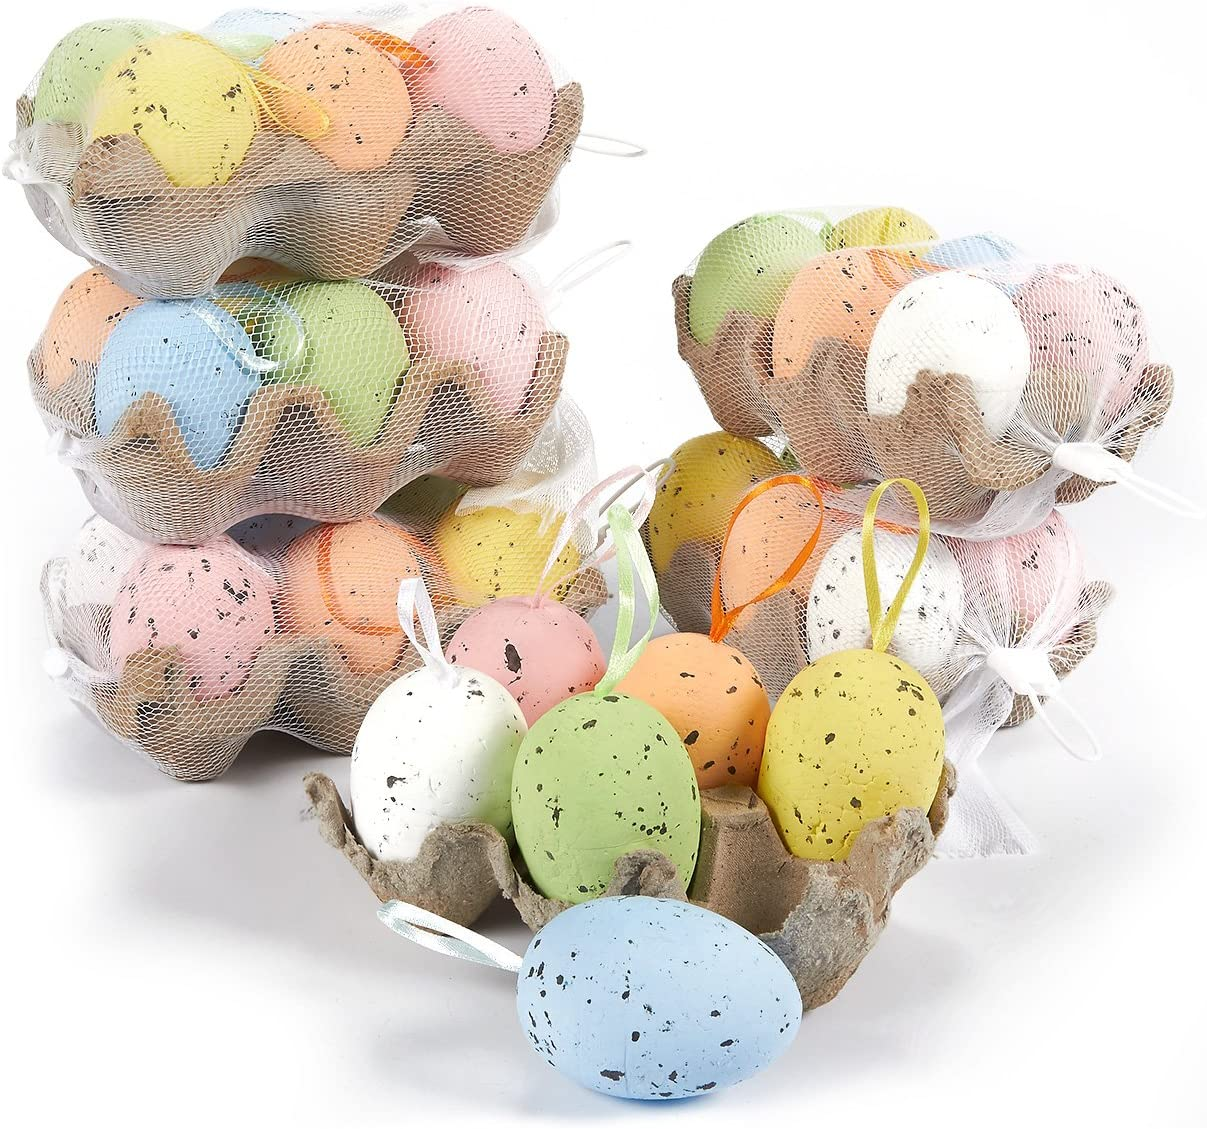 Easter Egg Ornaments in 6 Colorful Metallic Gold Designs (36 Pack)